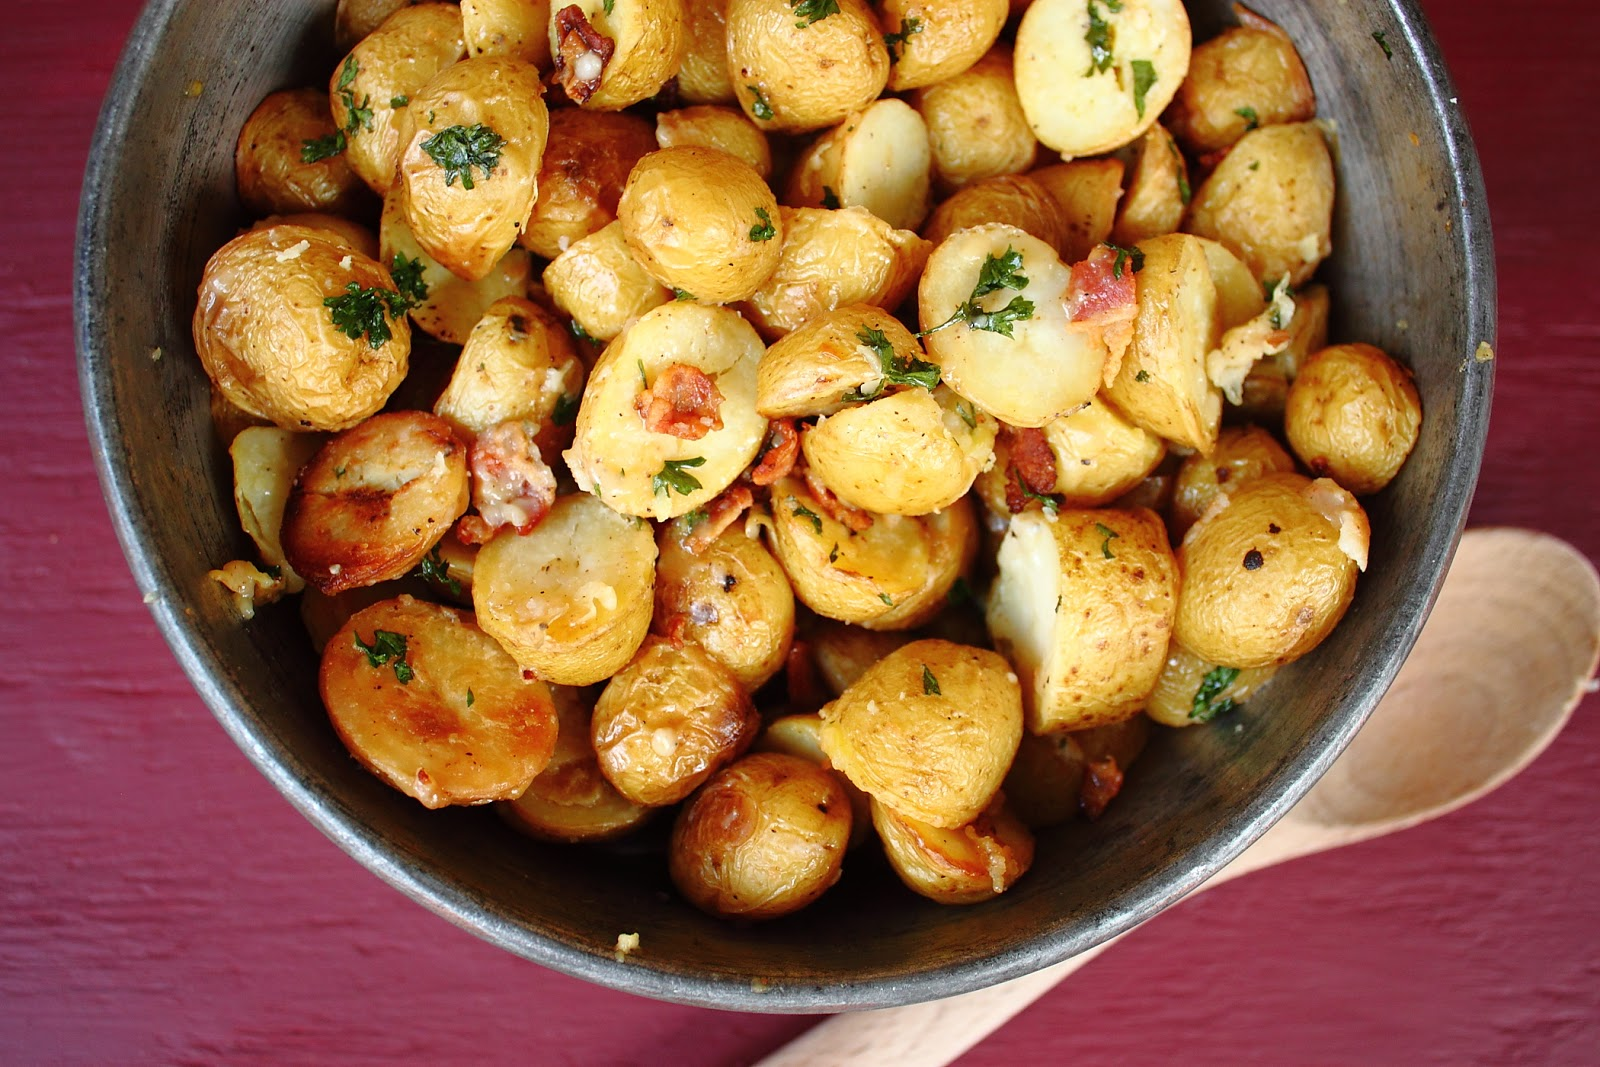 melted bacon is crispy and potatoes are evenly browned remove potatoes ...